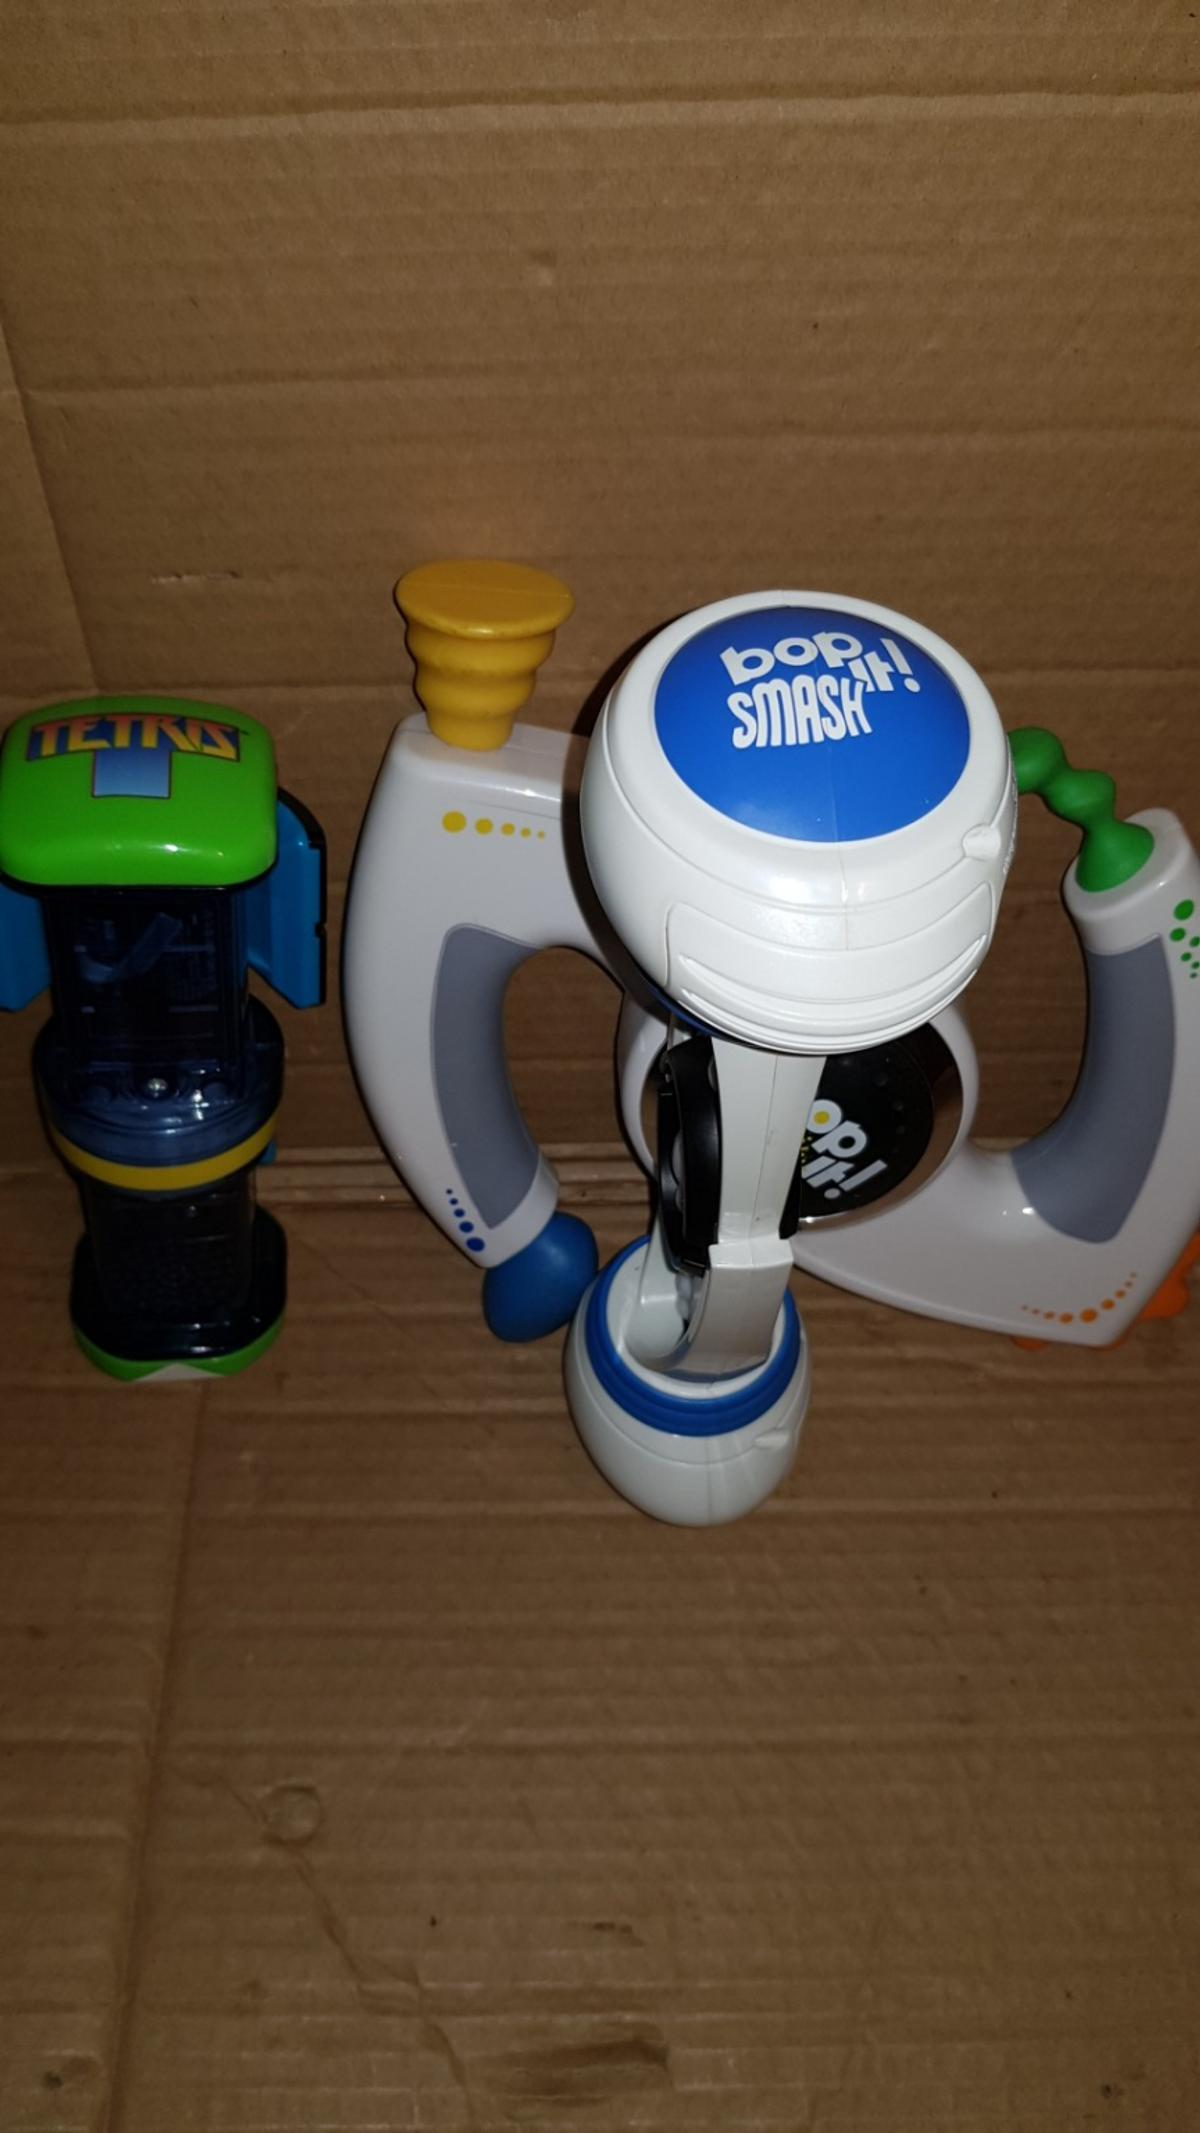 THERE ARE THREE BOP IT GAMES BOP IT XT BOP IT SMASH BOP IY TETRIS HOURS OF FUN FOR THE WHOLE FAMILY . NO SILLY OFFERS PLEASE collect or l can post it to you .